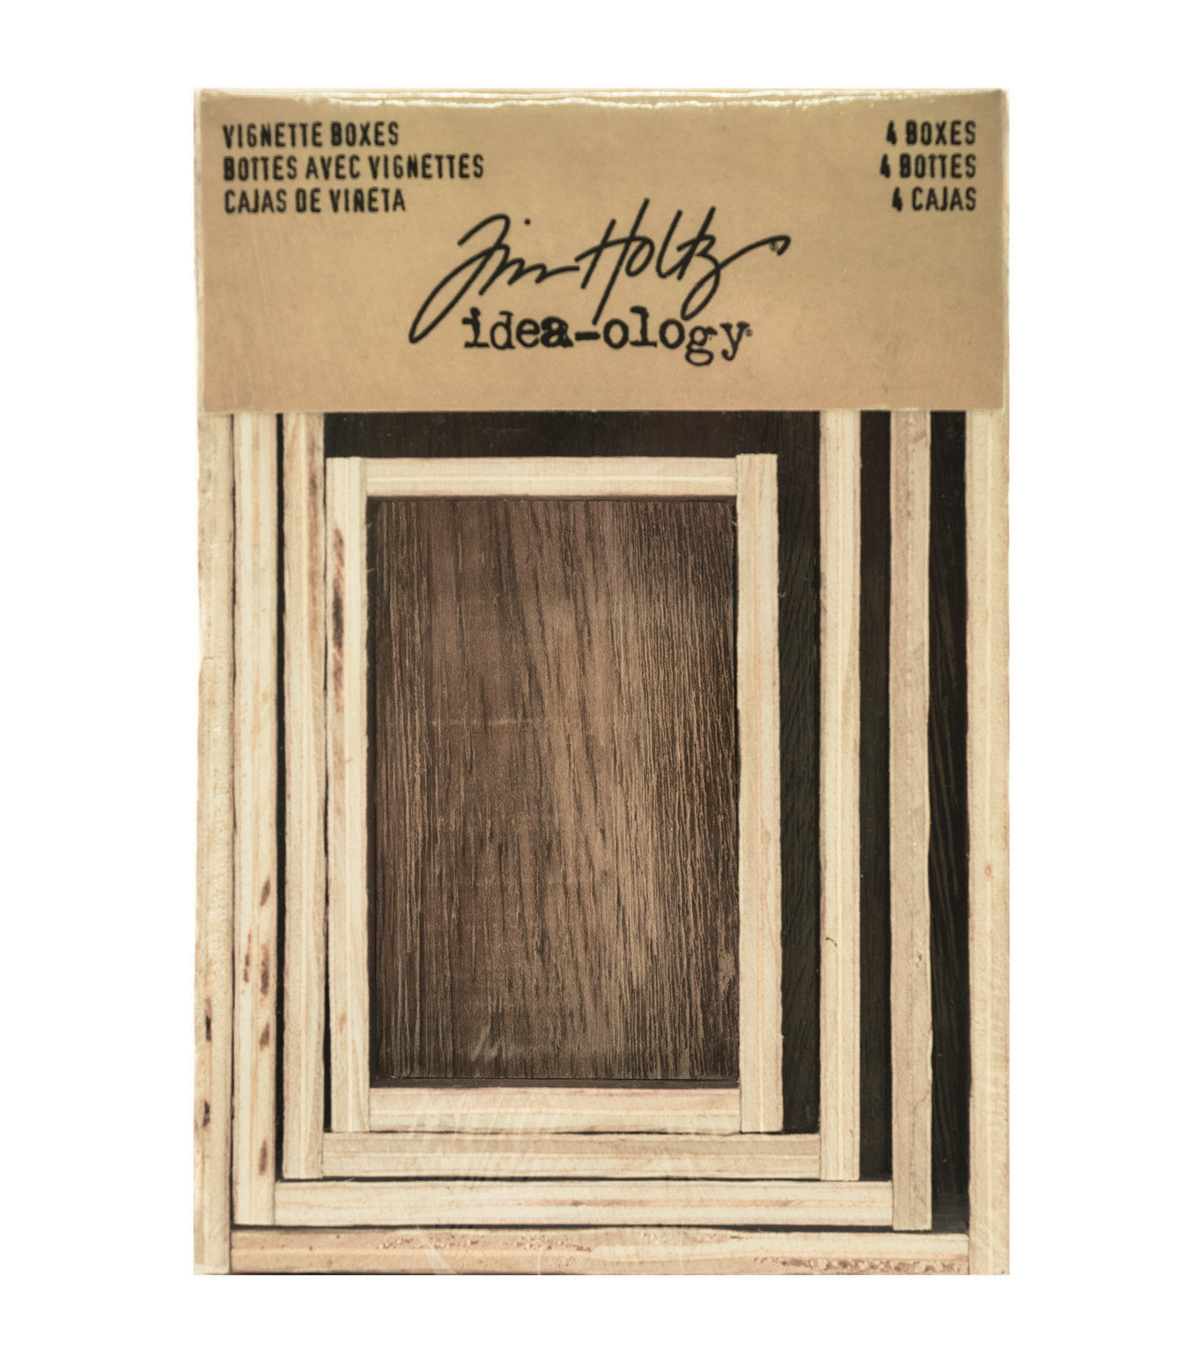 Tim Holtz Idea-ology Vignette Boxes-Brown